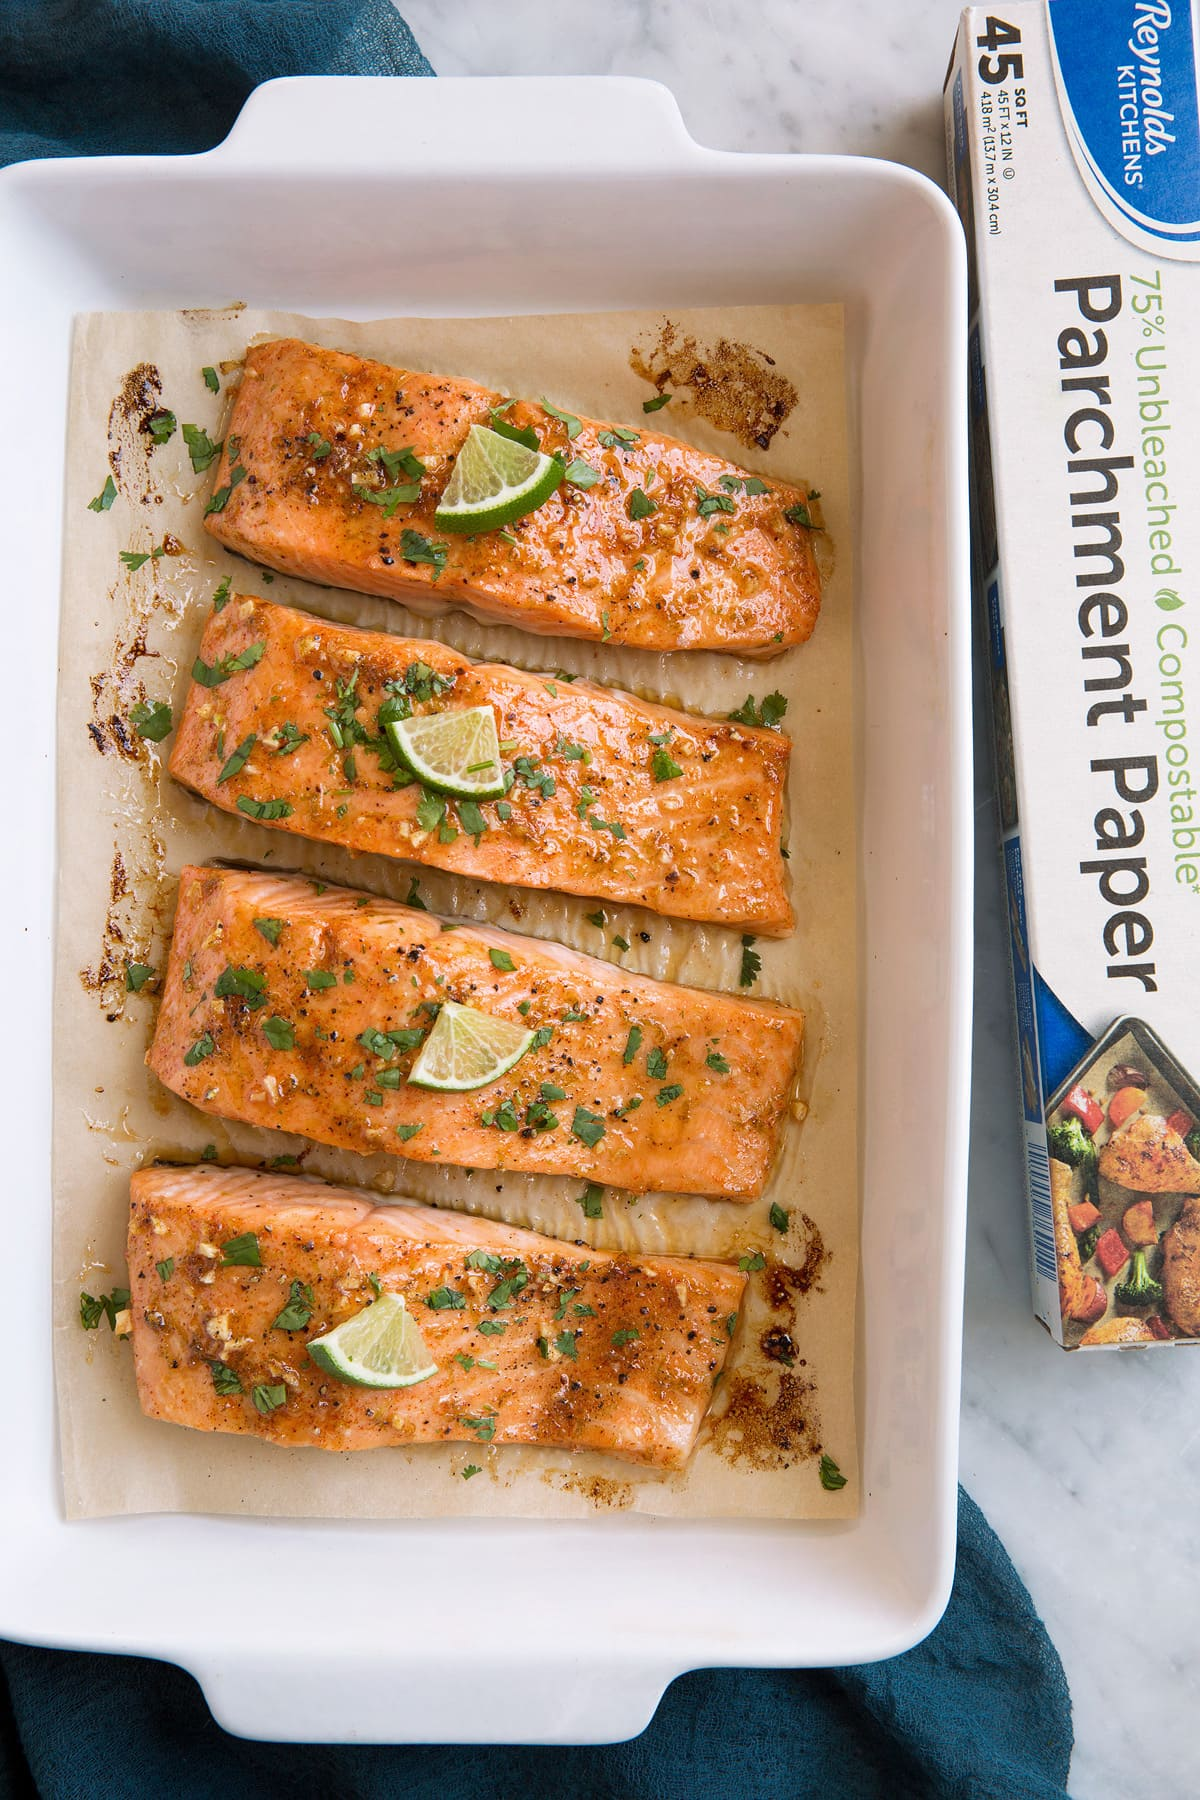 Overhead image of salmon fillets in a baking dish.